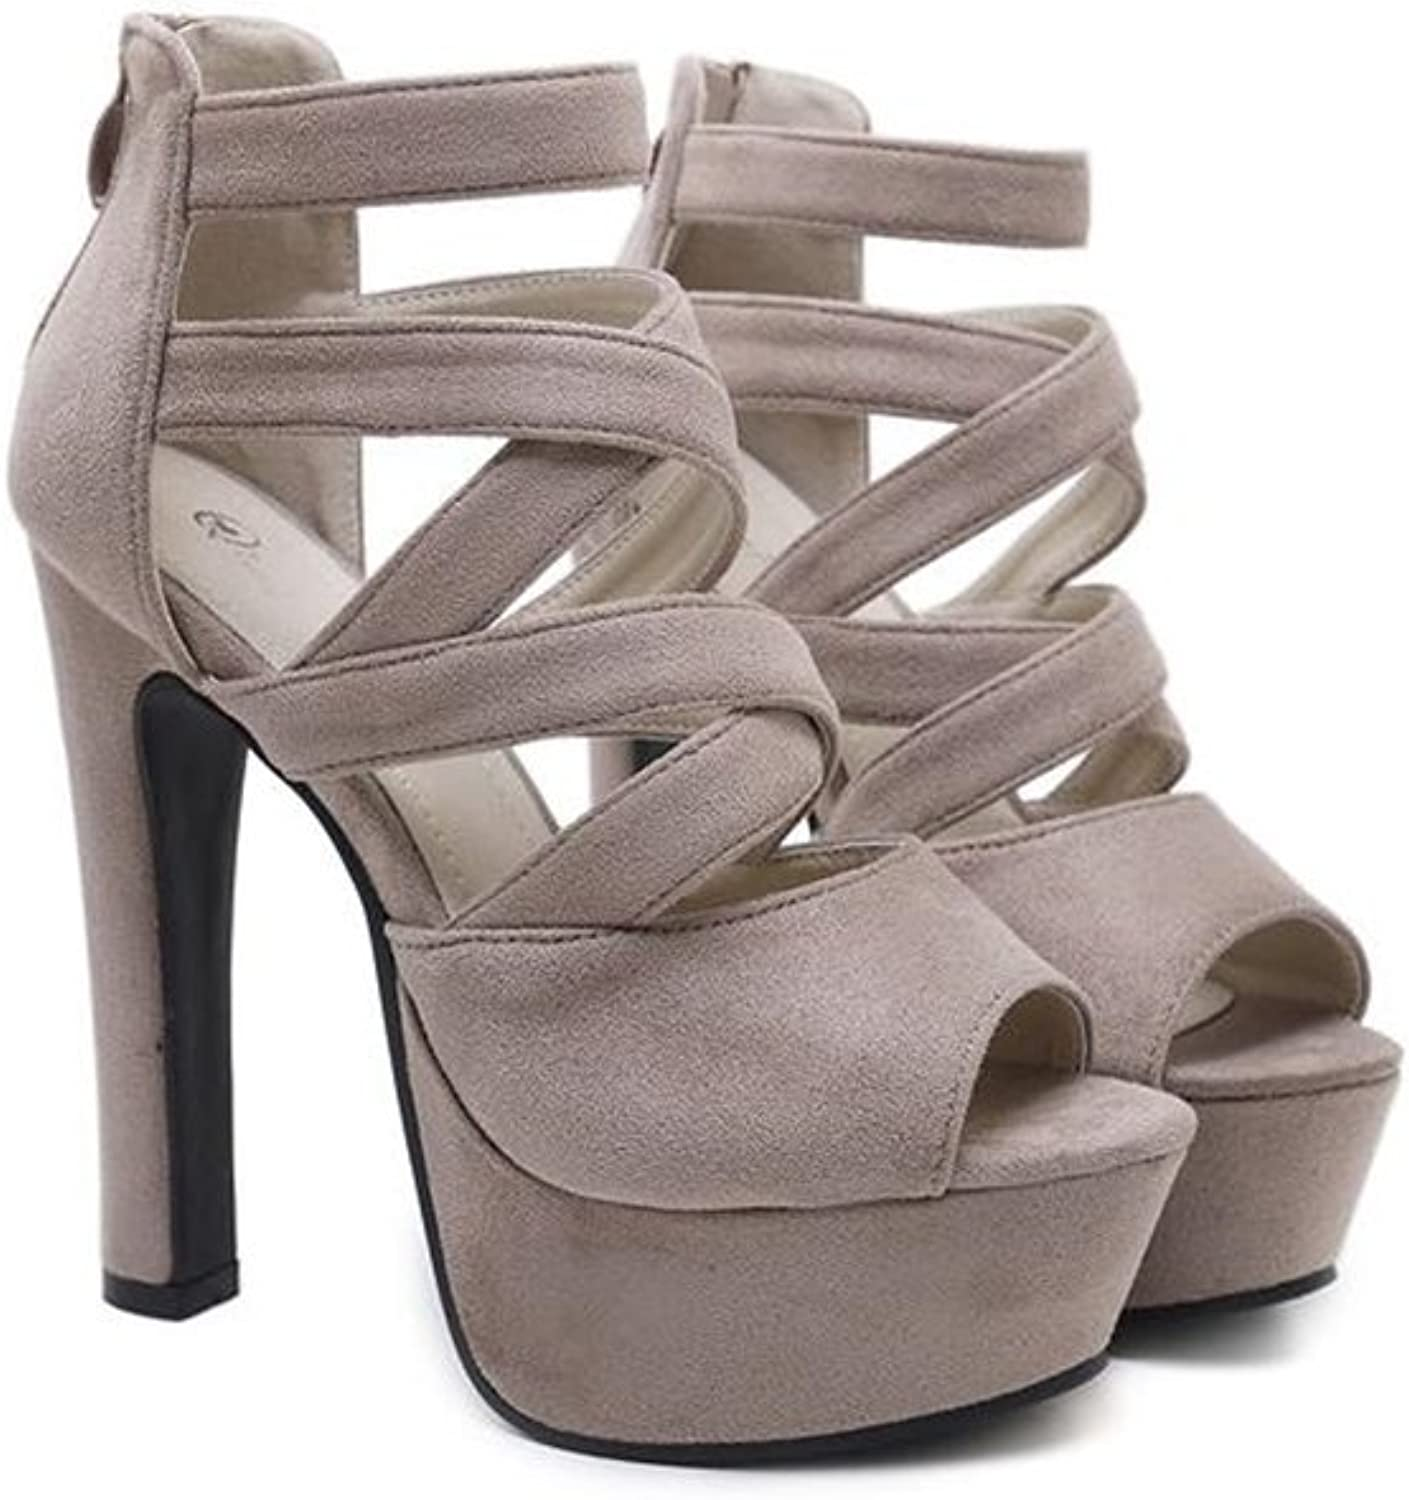 SUNNY Store Womens Peep Toe Sandals Strappy Platform Stiletto Pumps High Heels shoes